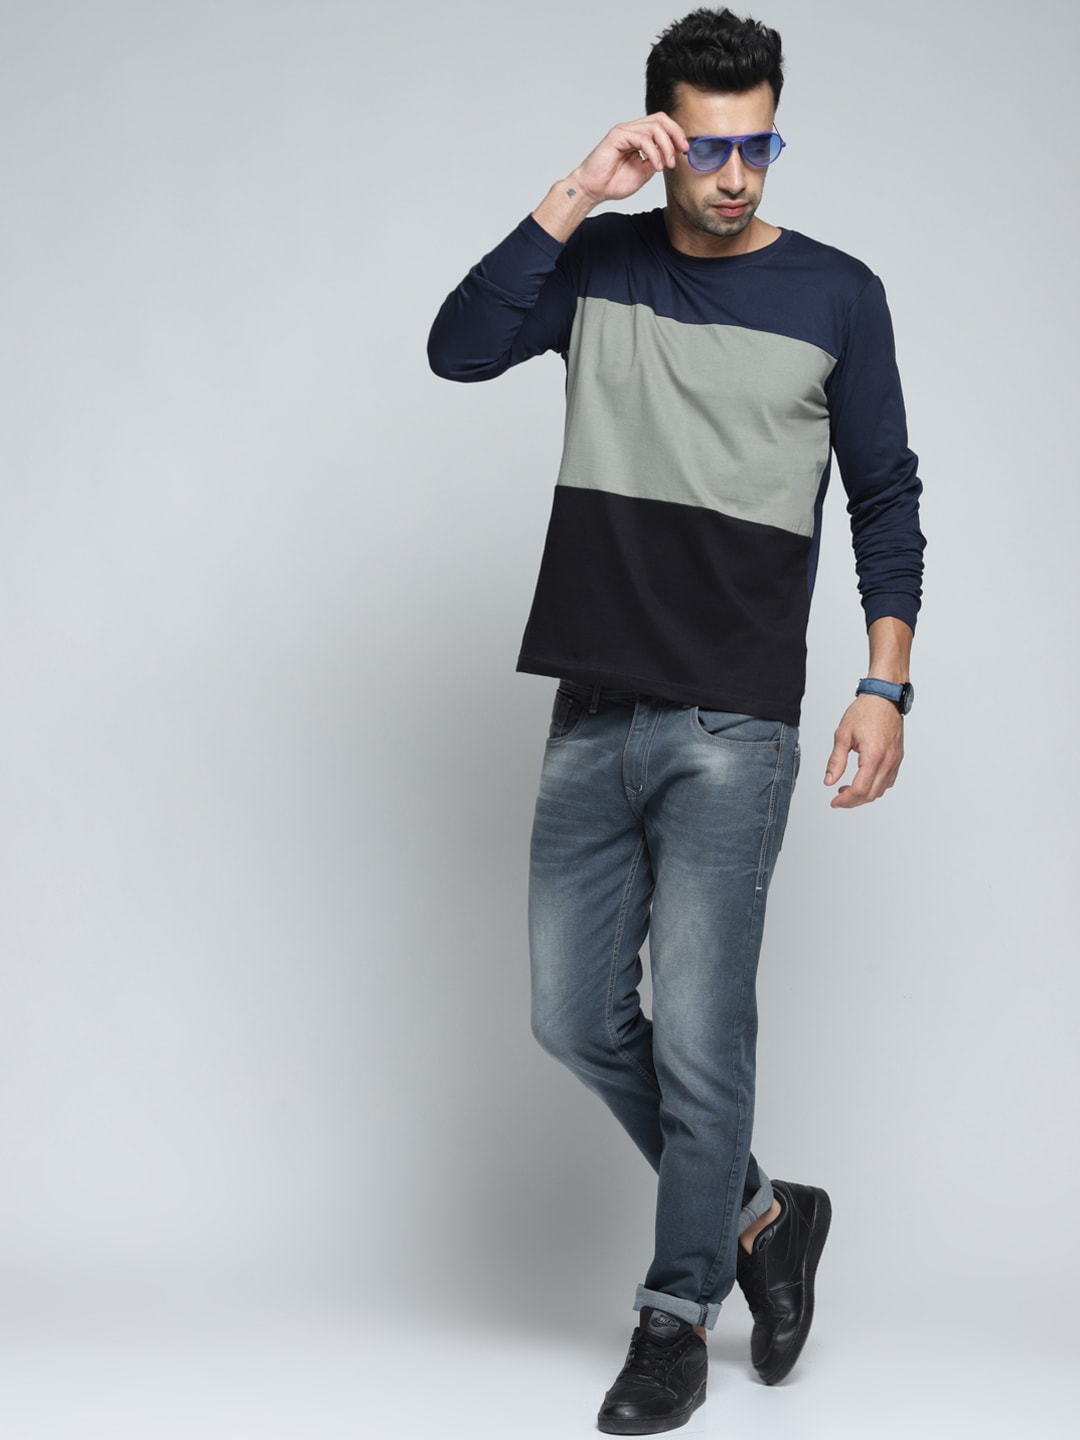 ab62e13f418 Men T-shirts - Buy T-shirt for Men Online in India